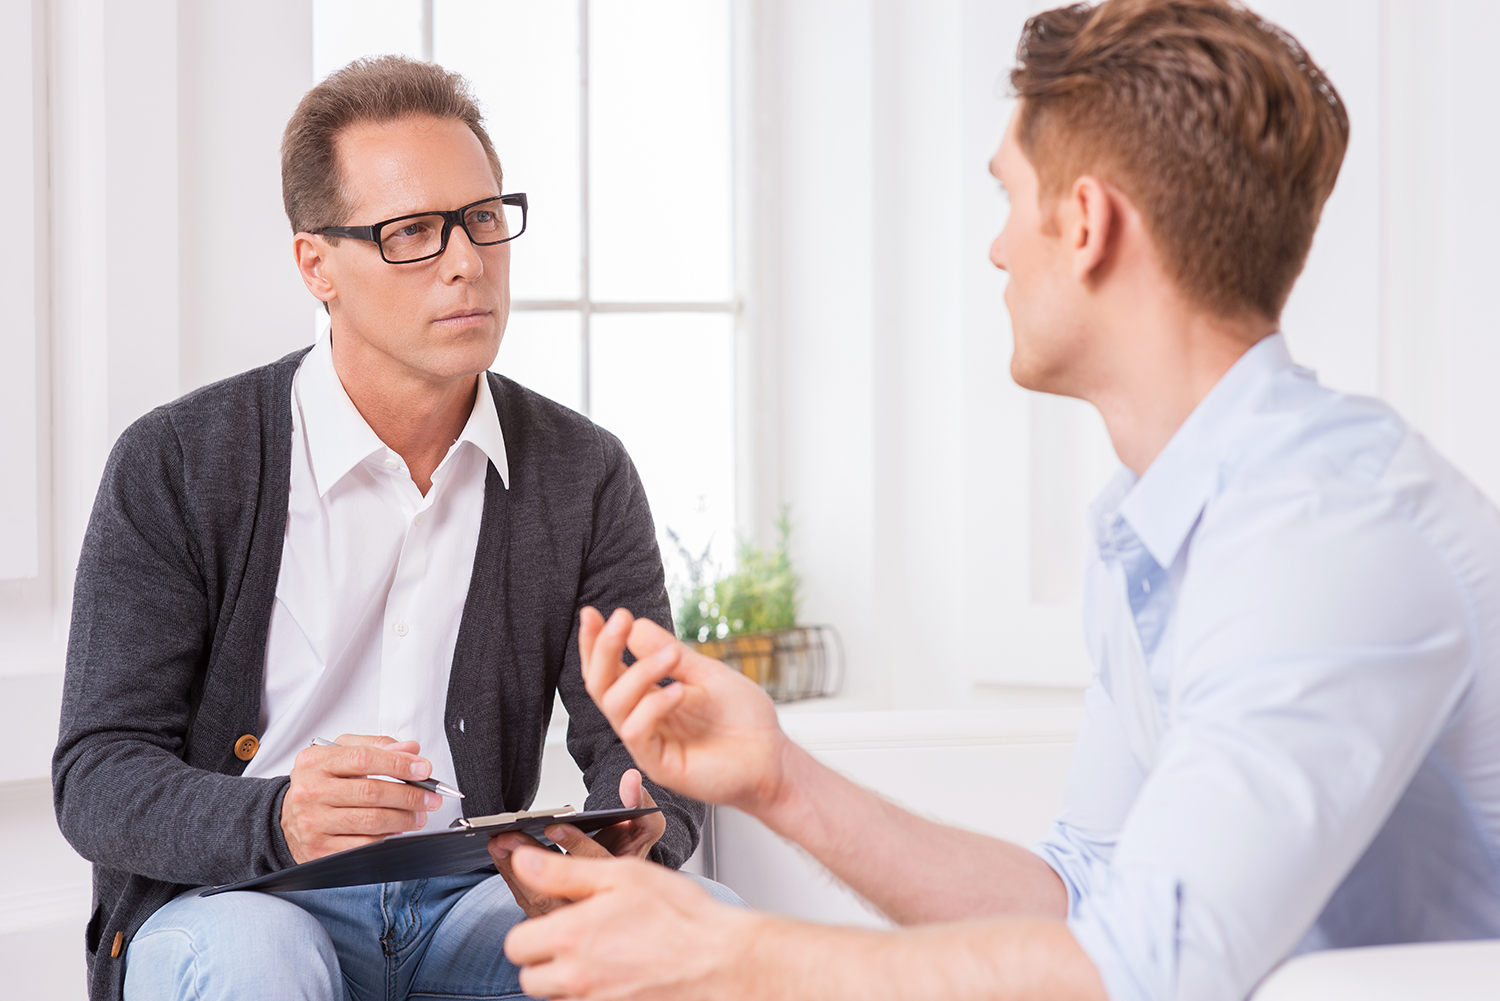 Should You Do Focus Groups or One-on-One Interviews?